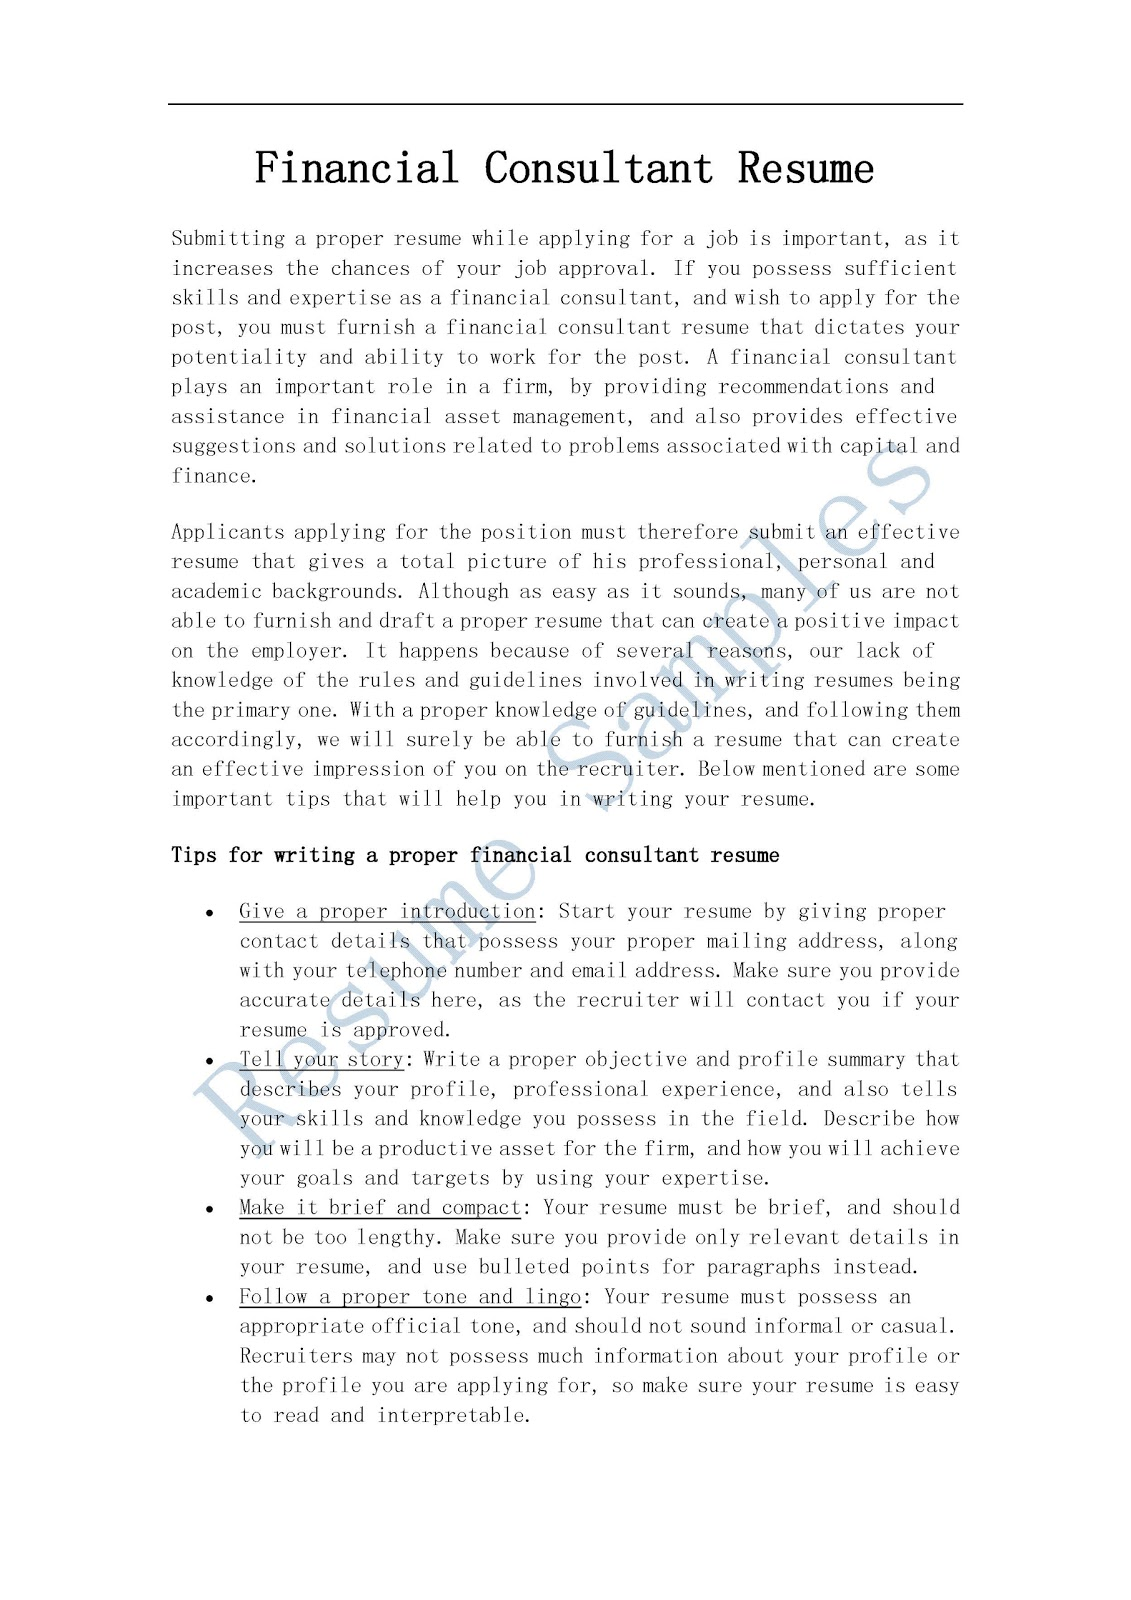 resume samples  financial consultant resume